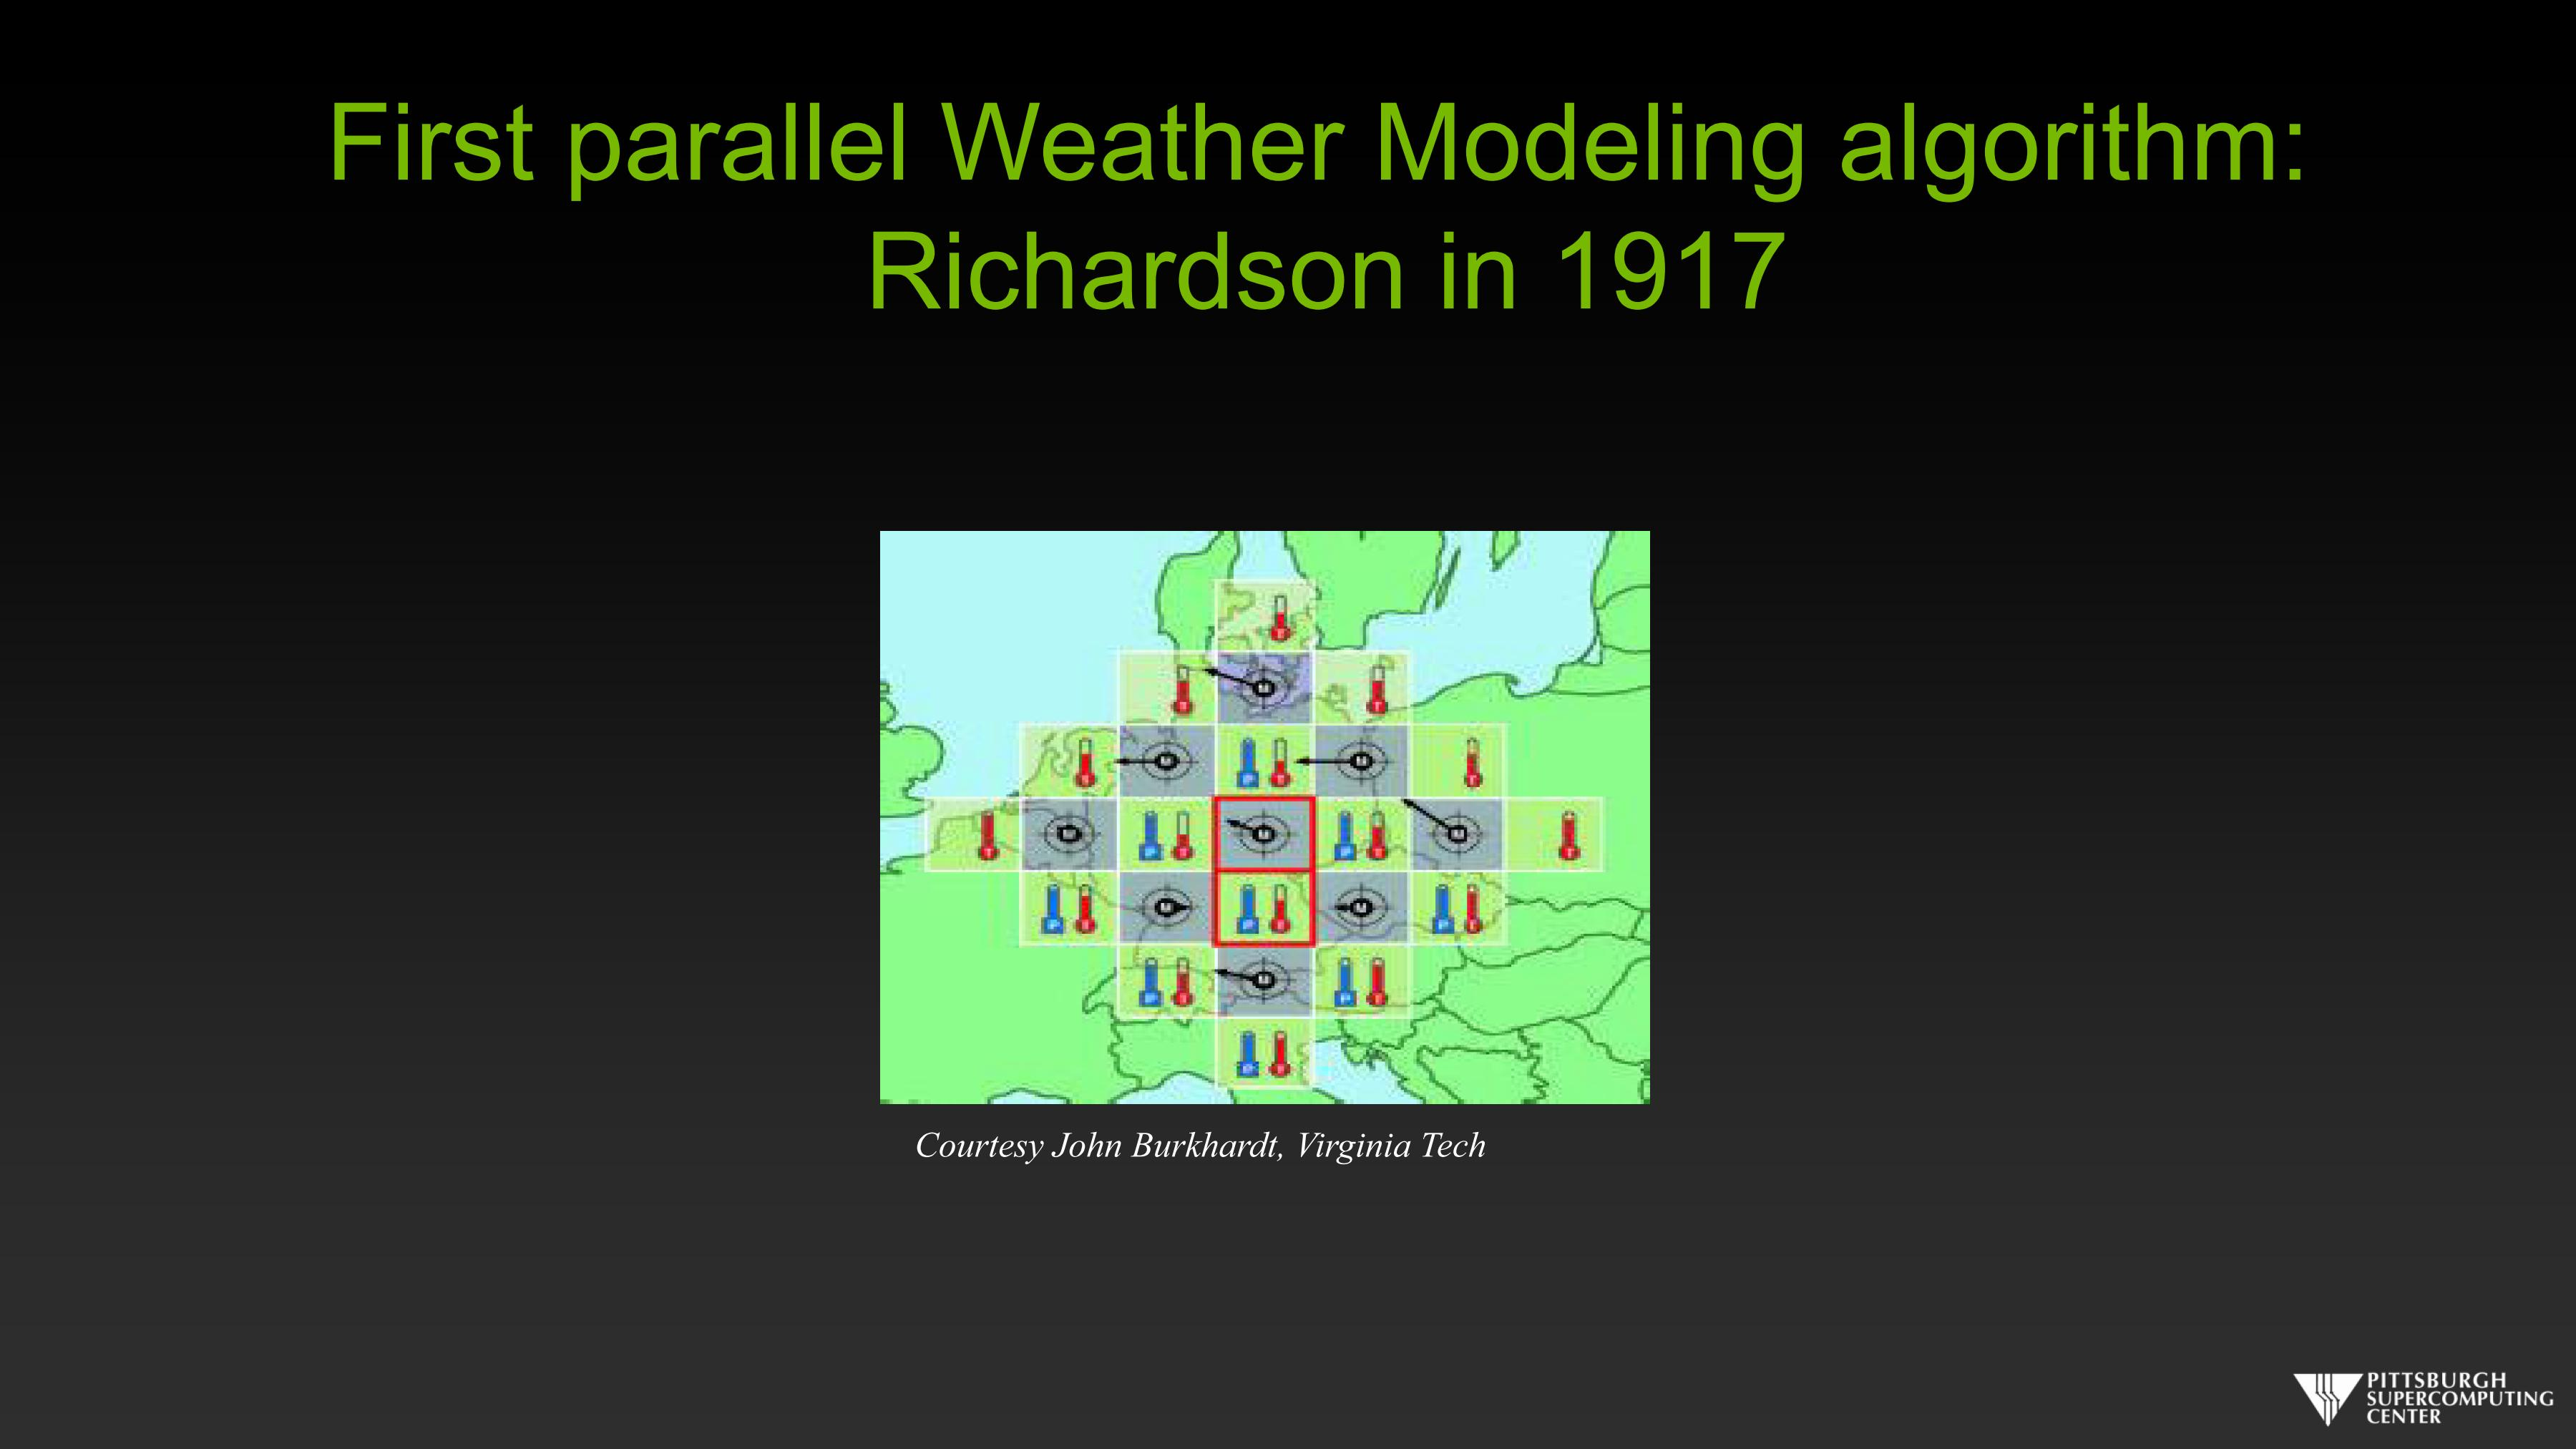 First parallel Weather Modeling algorithm Richardson in 1917